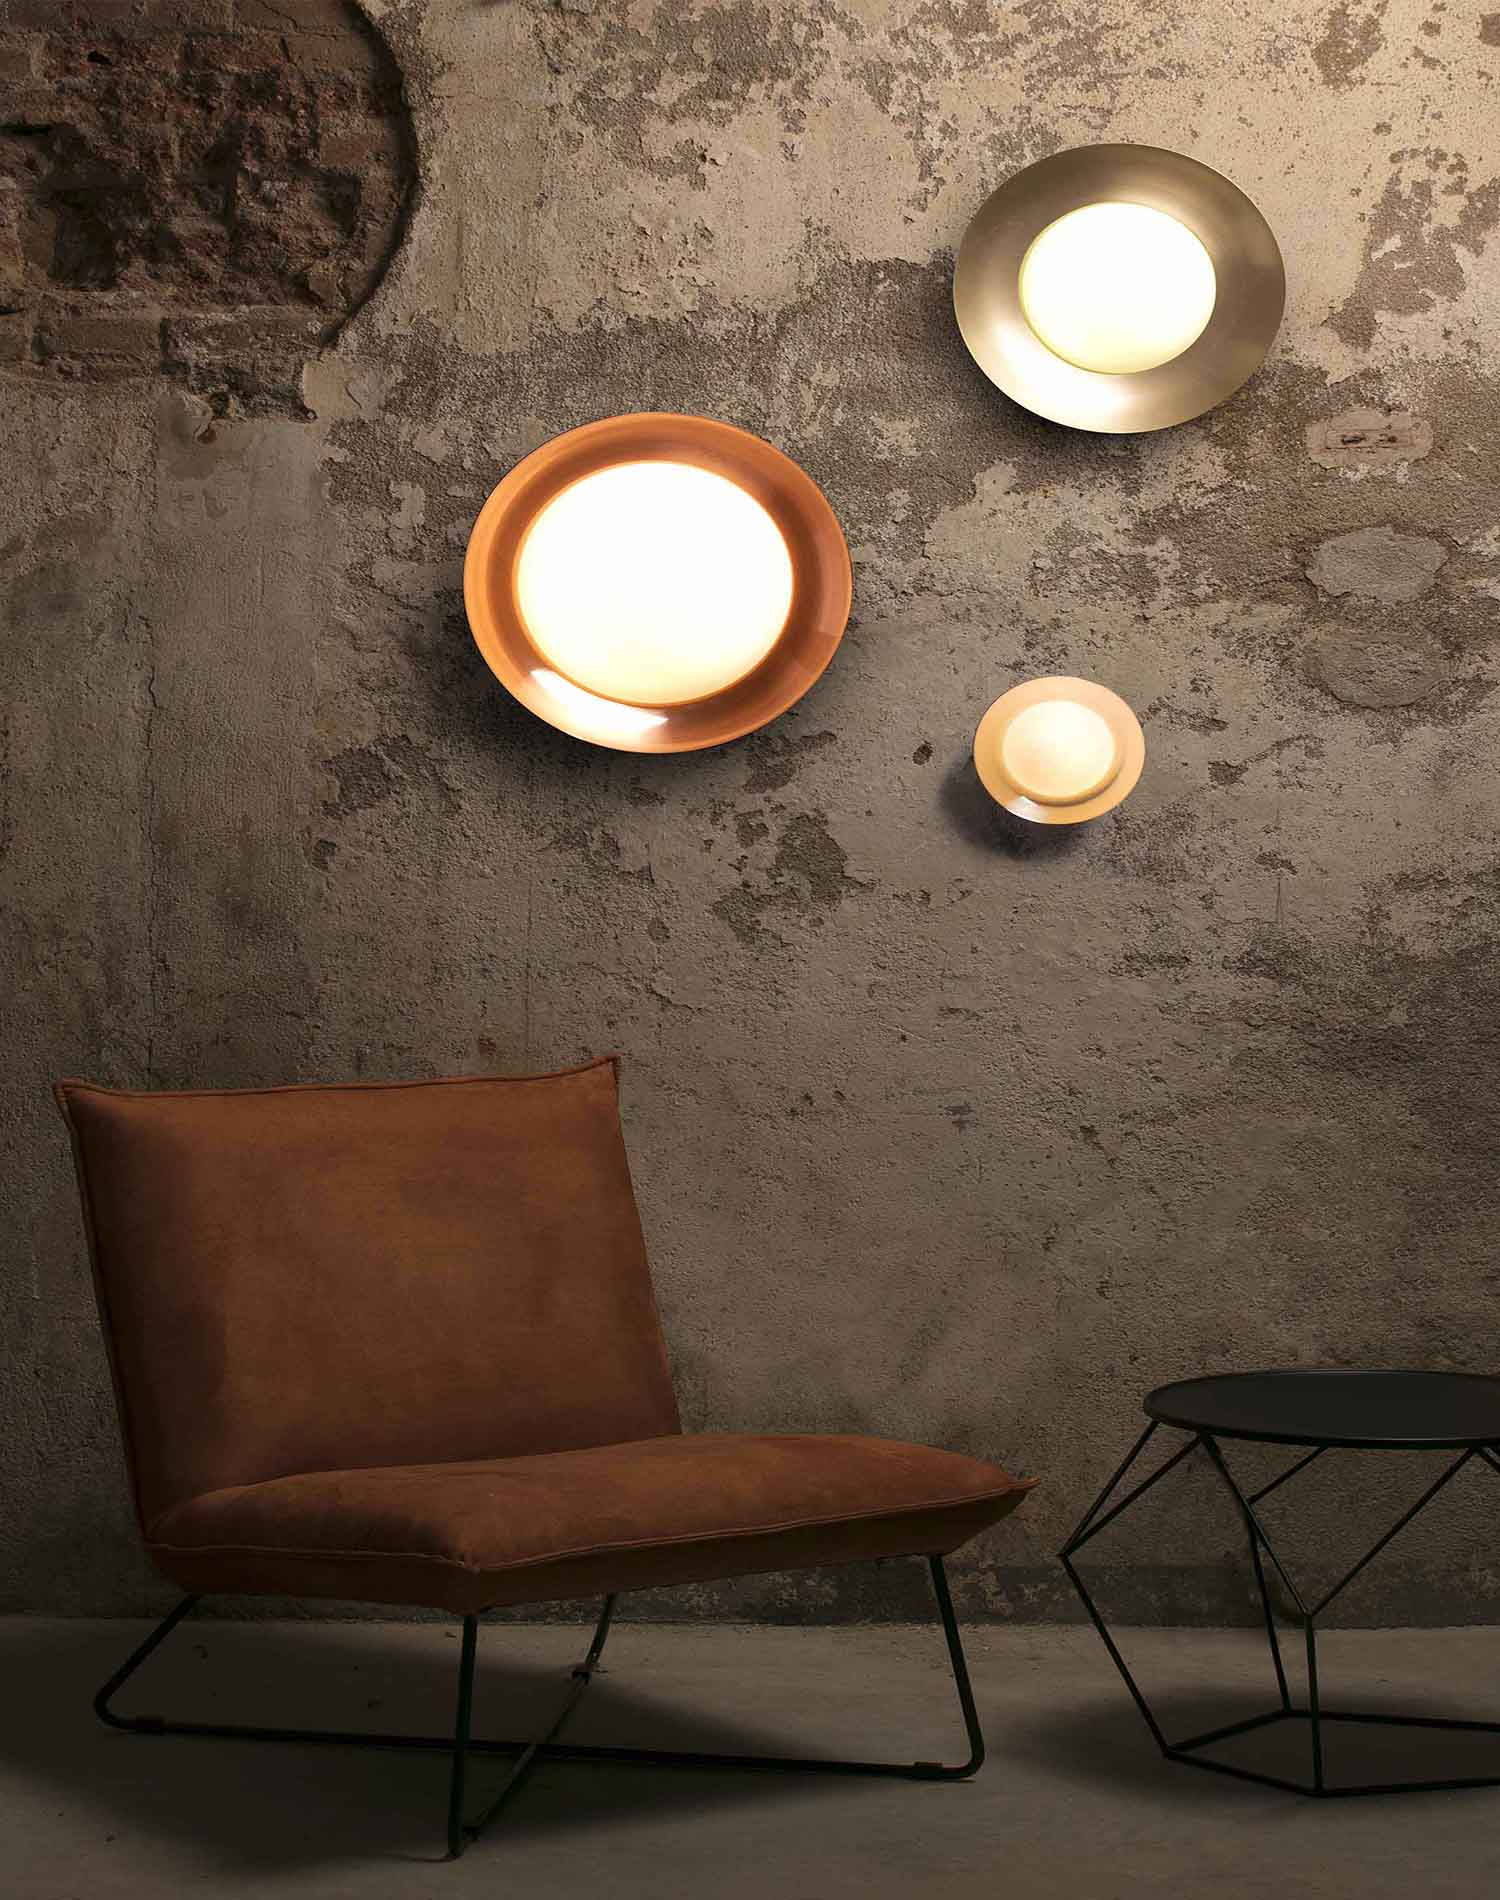 More information of SIDE wall lamp - Faro